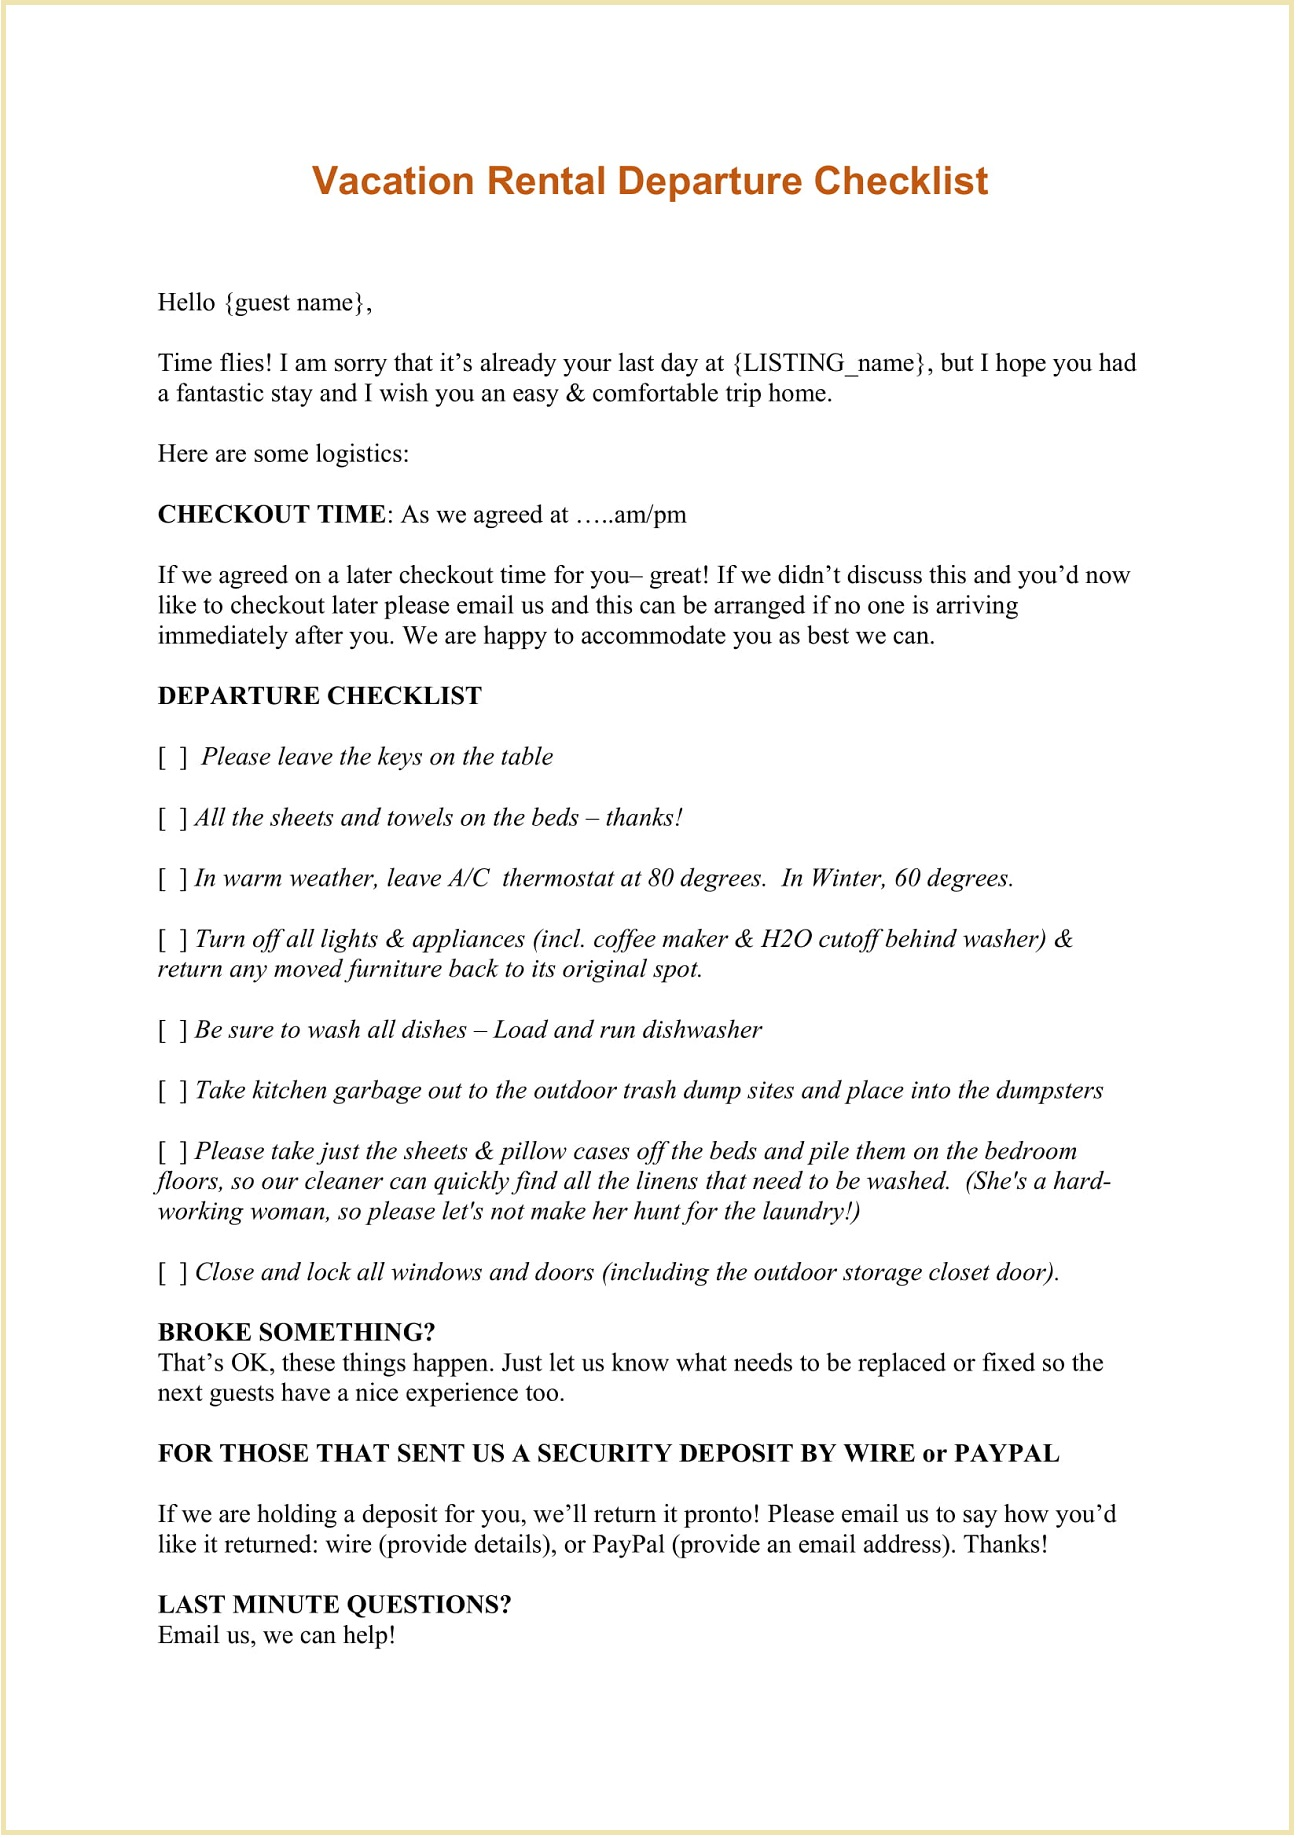 Vacation Rental Departure Checklist Word and Email Template